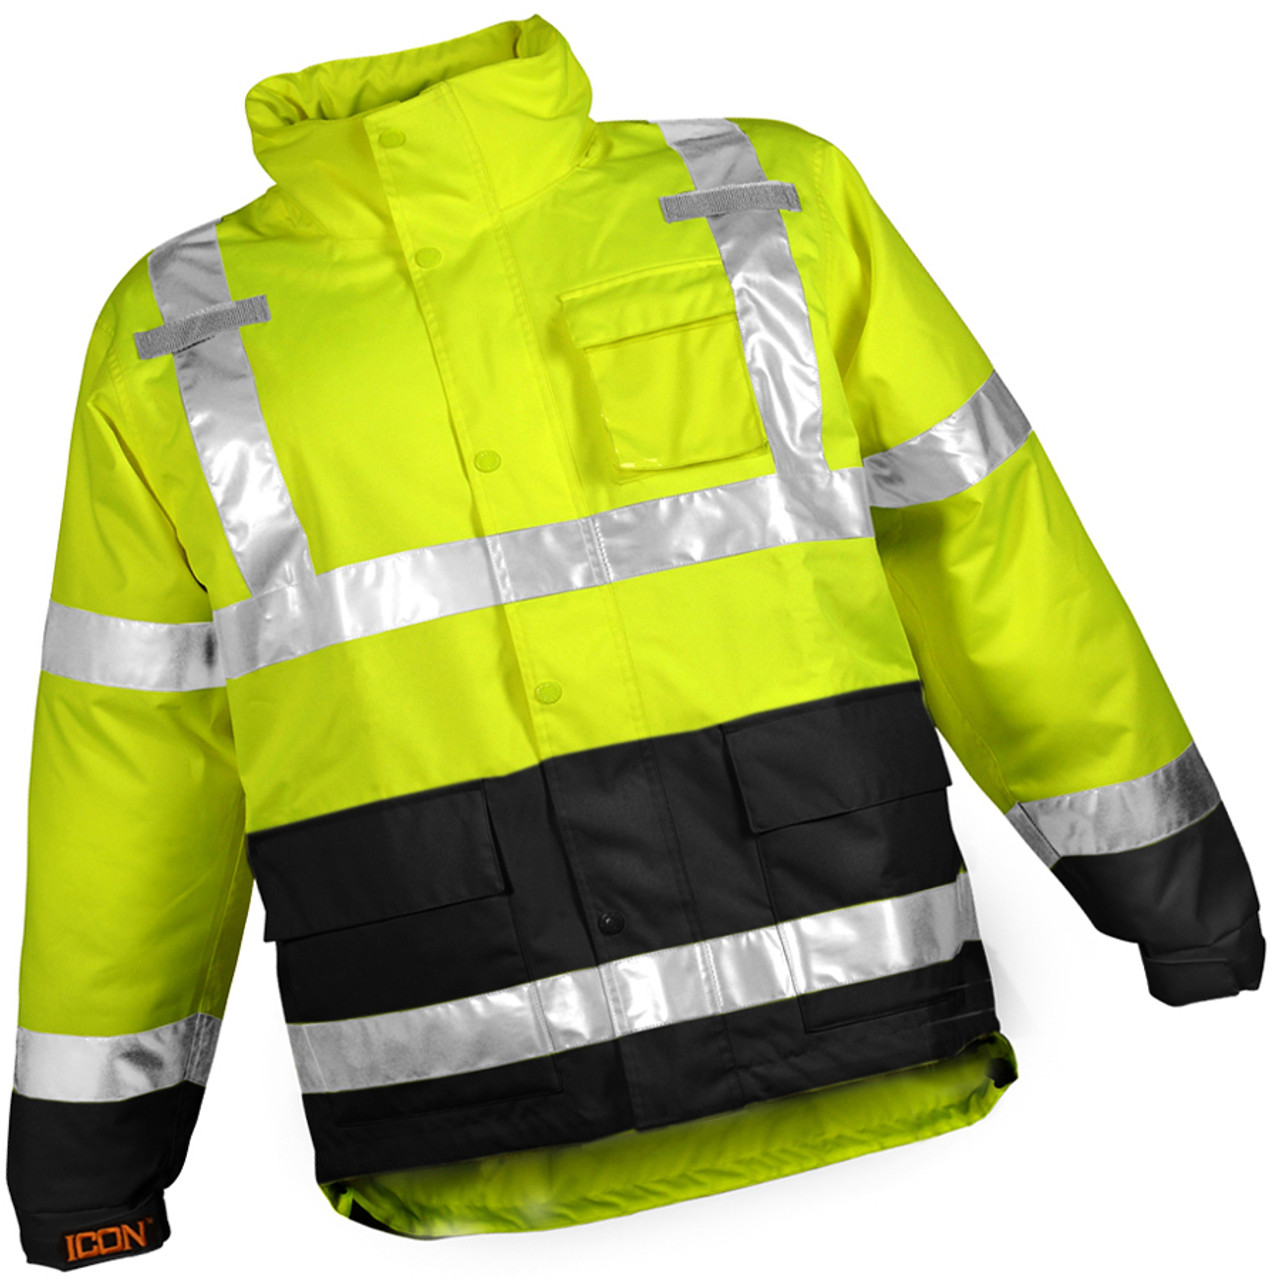 Icon™ Jacket -Fluorescent Yellow-Green-Black - Attached Hood - Silver  Reflective